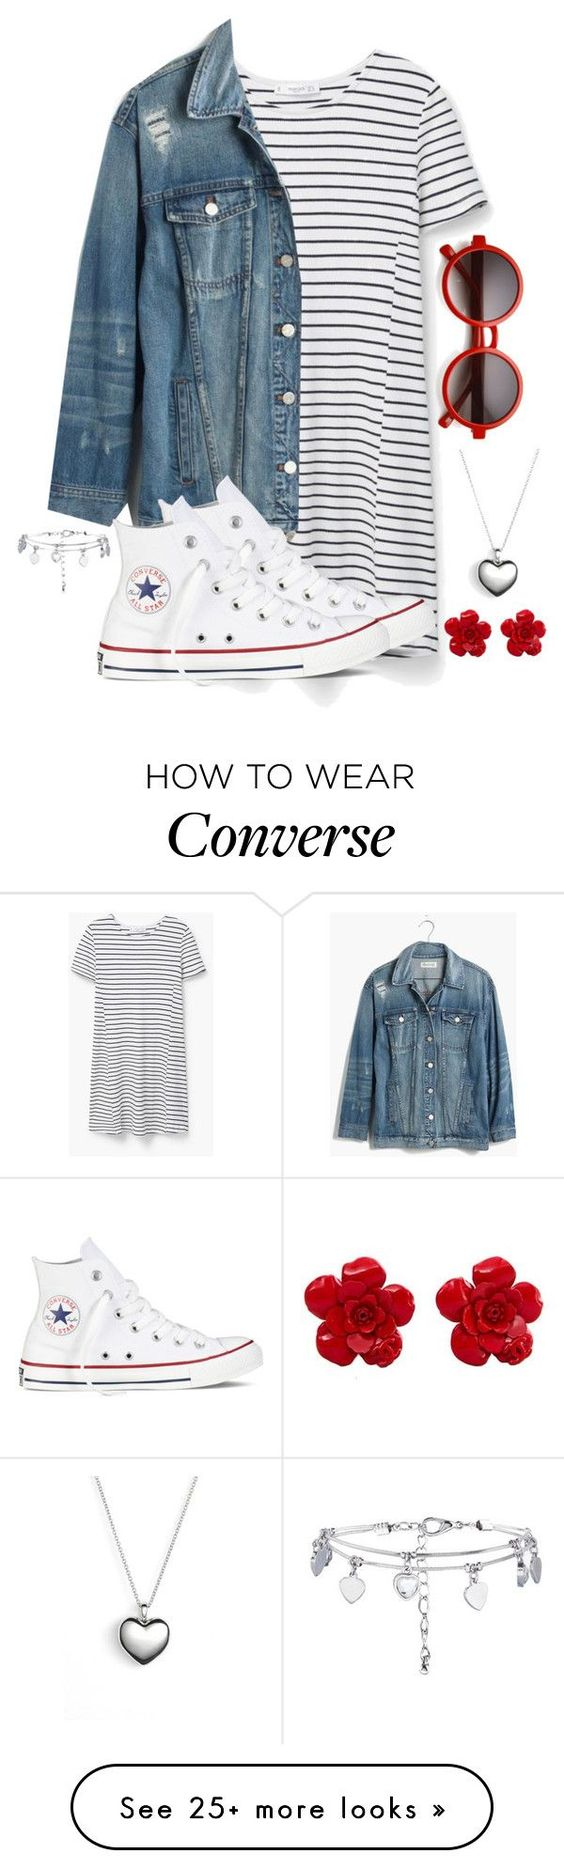 """""""This is totally my style"""" by galaxygirl12427 on Polyvore featuring MANGO, Madewell, Converse, Pandora, Chanel, women's clothing, women, female, woman and misses"""